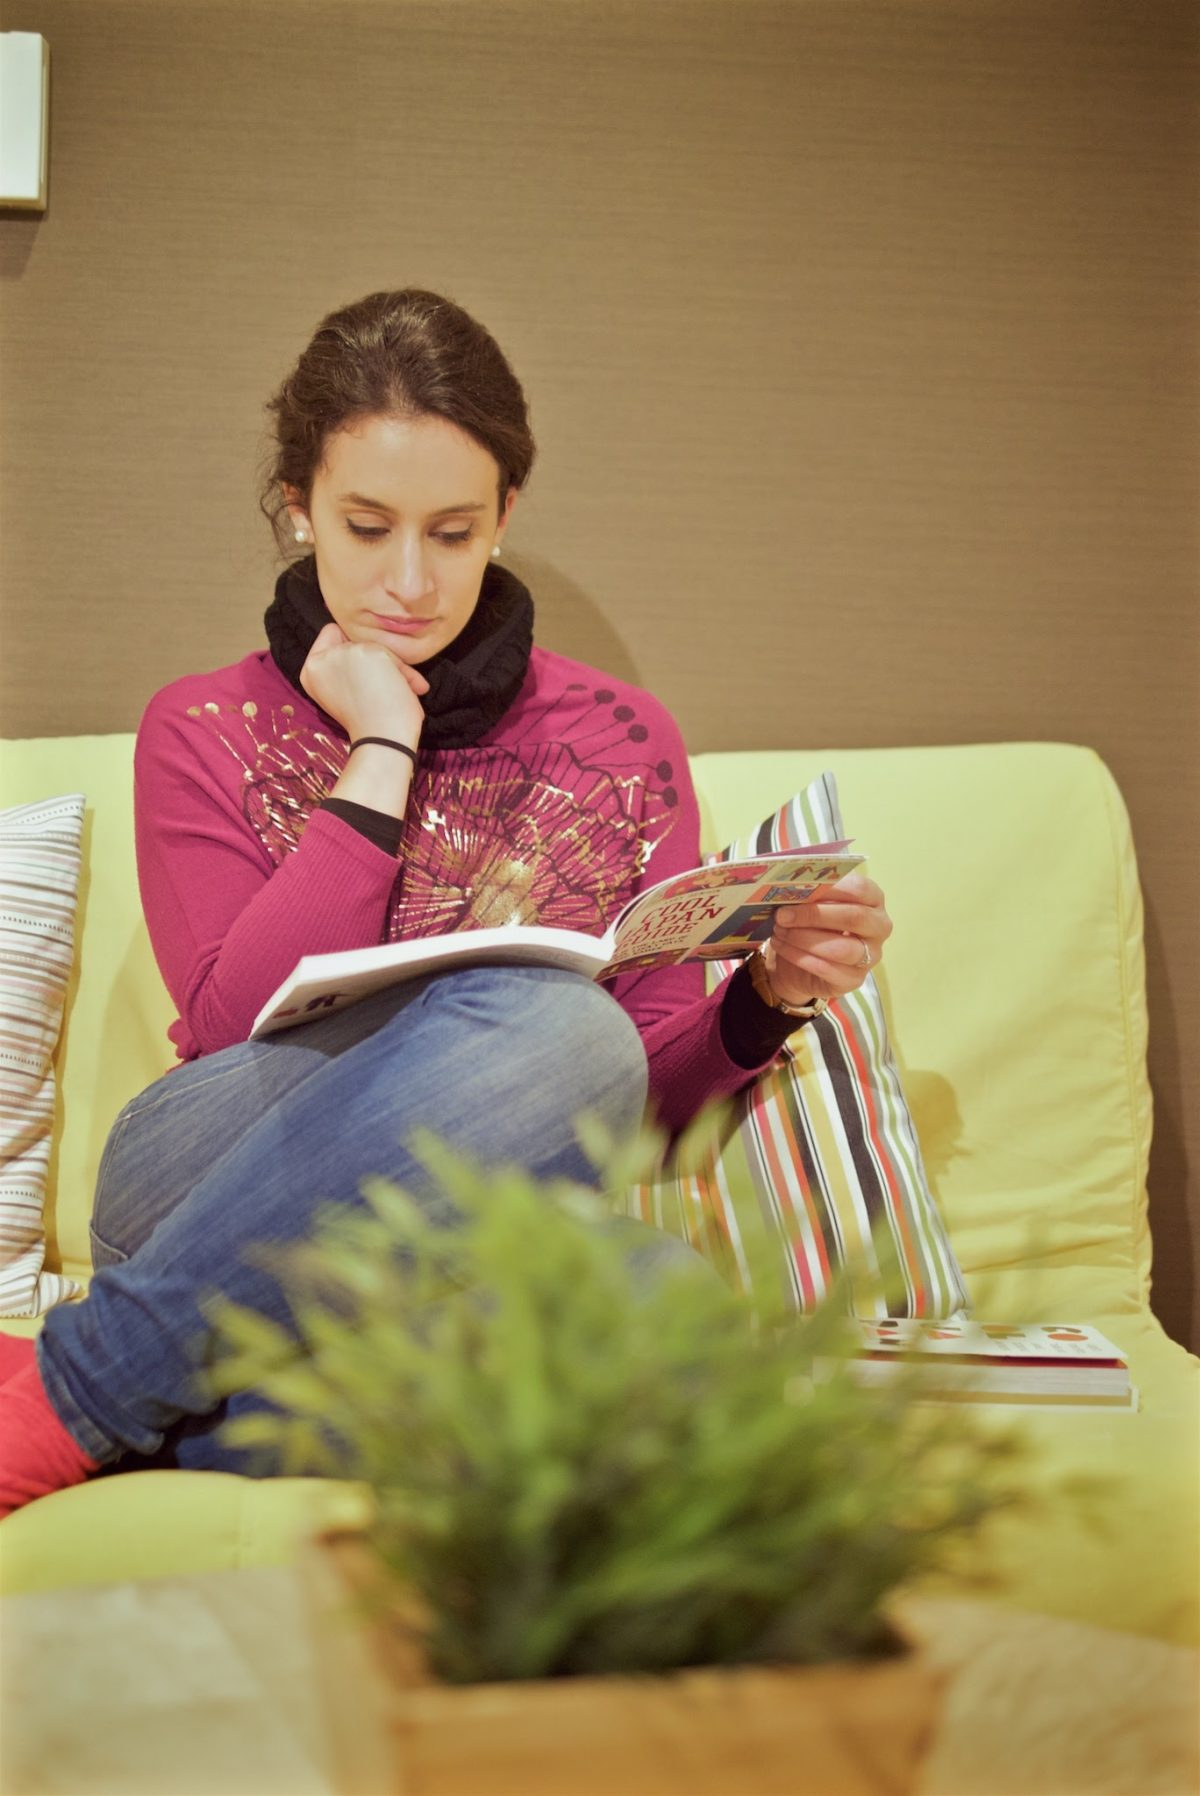 Girl reading a magazine